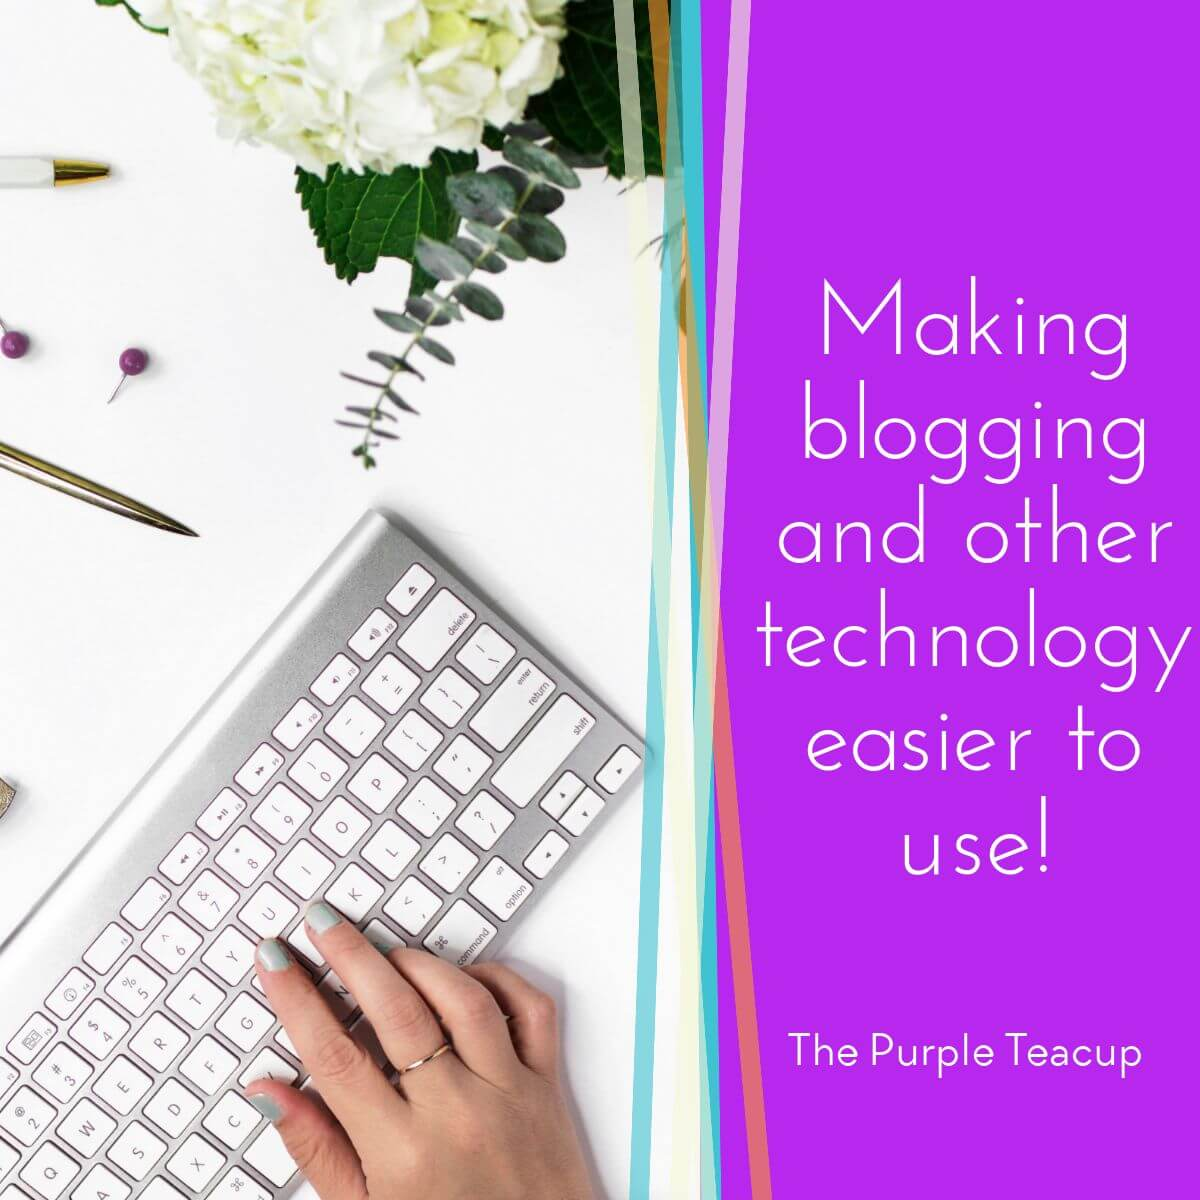 Learn about blogging and other technology at The Purple Teacup!